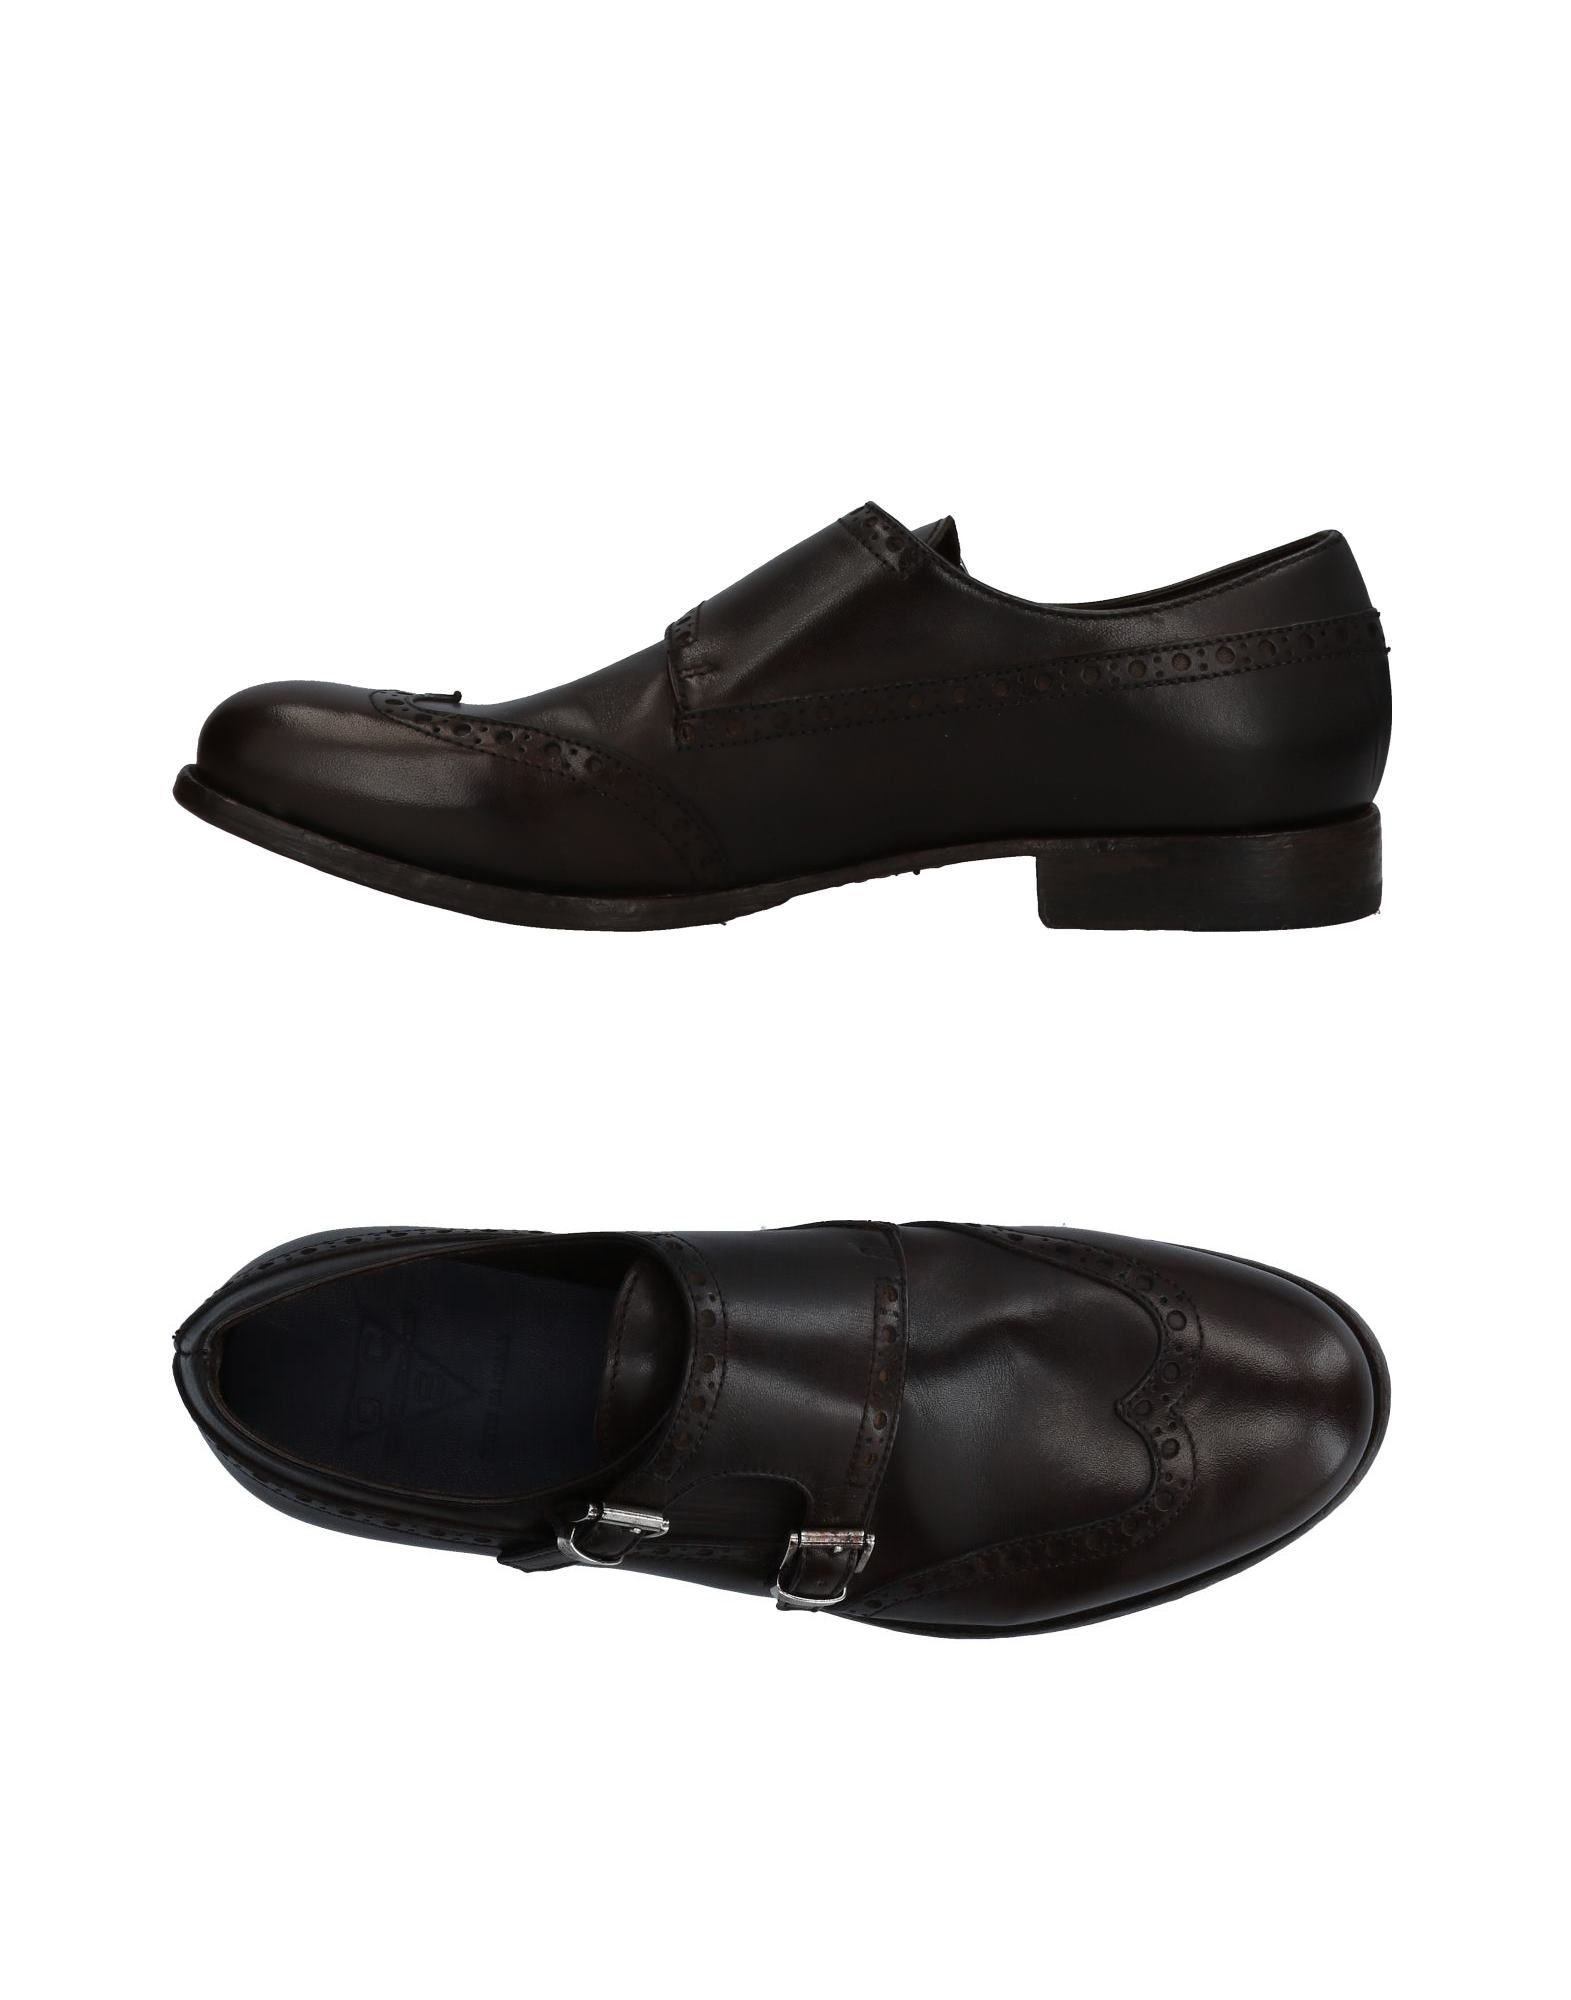 Mocassino Open Closed  Shoes Uomo Uomo Uomo - 11435183LW 724e5f